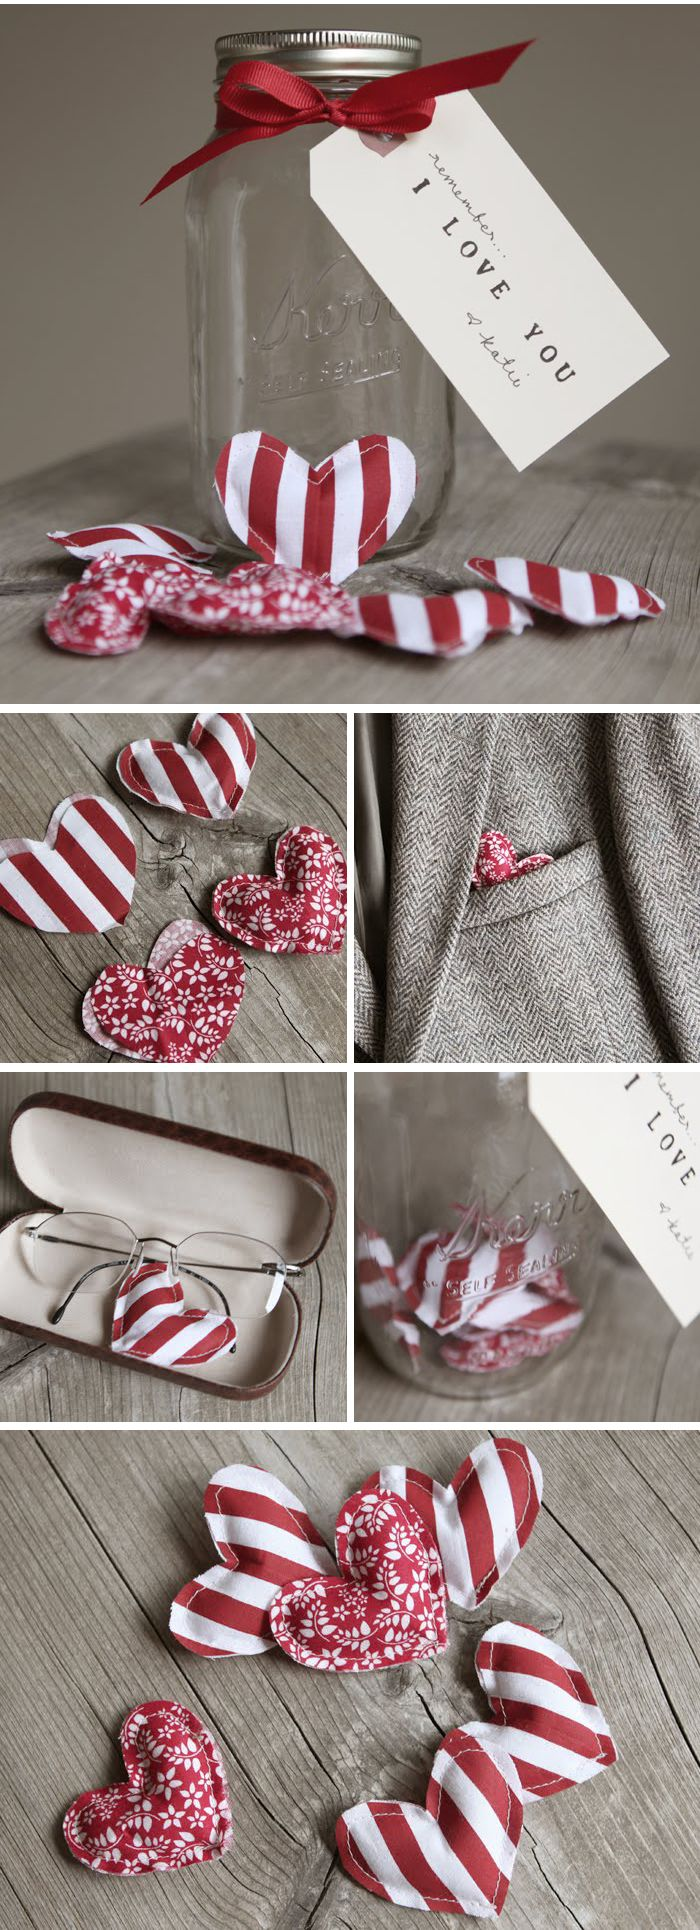 Valentine's Day heart scavenger hunt...thinking about doing this for Corey so he can continue finding them while I'm away